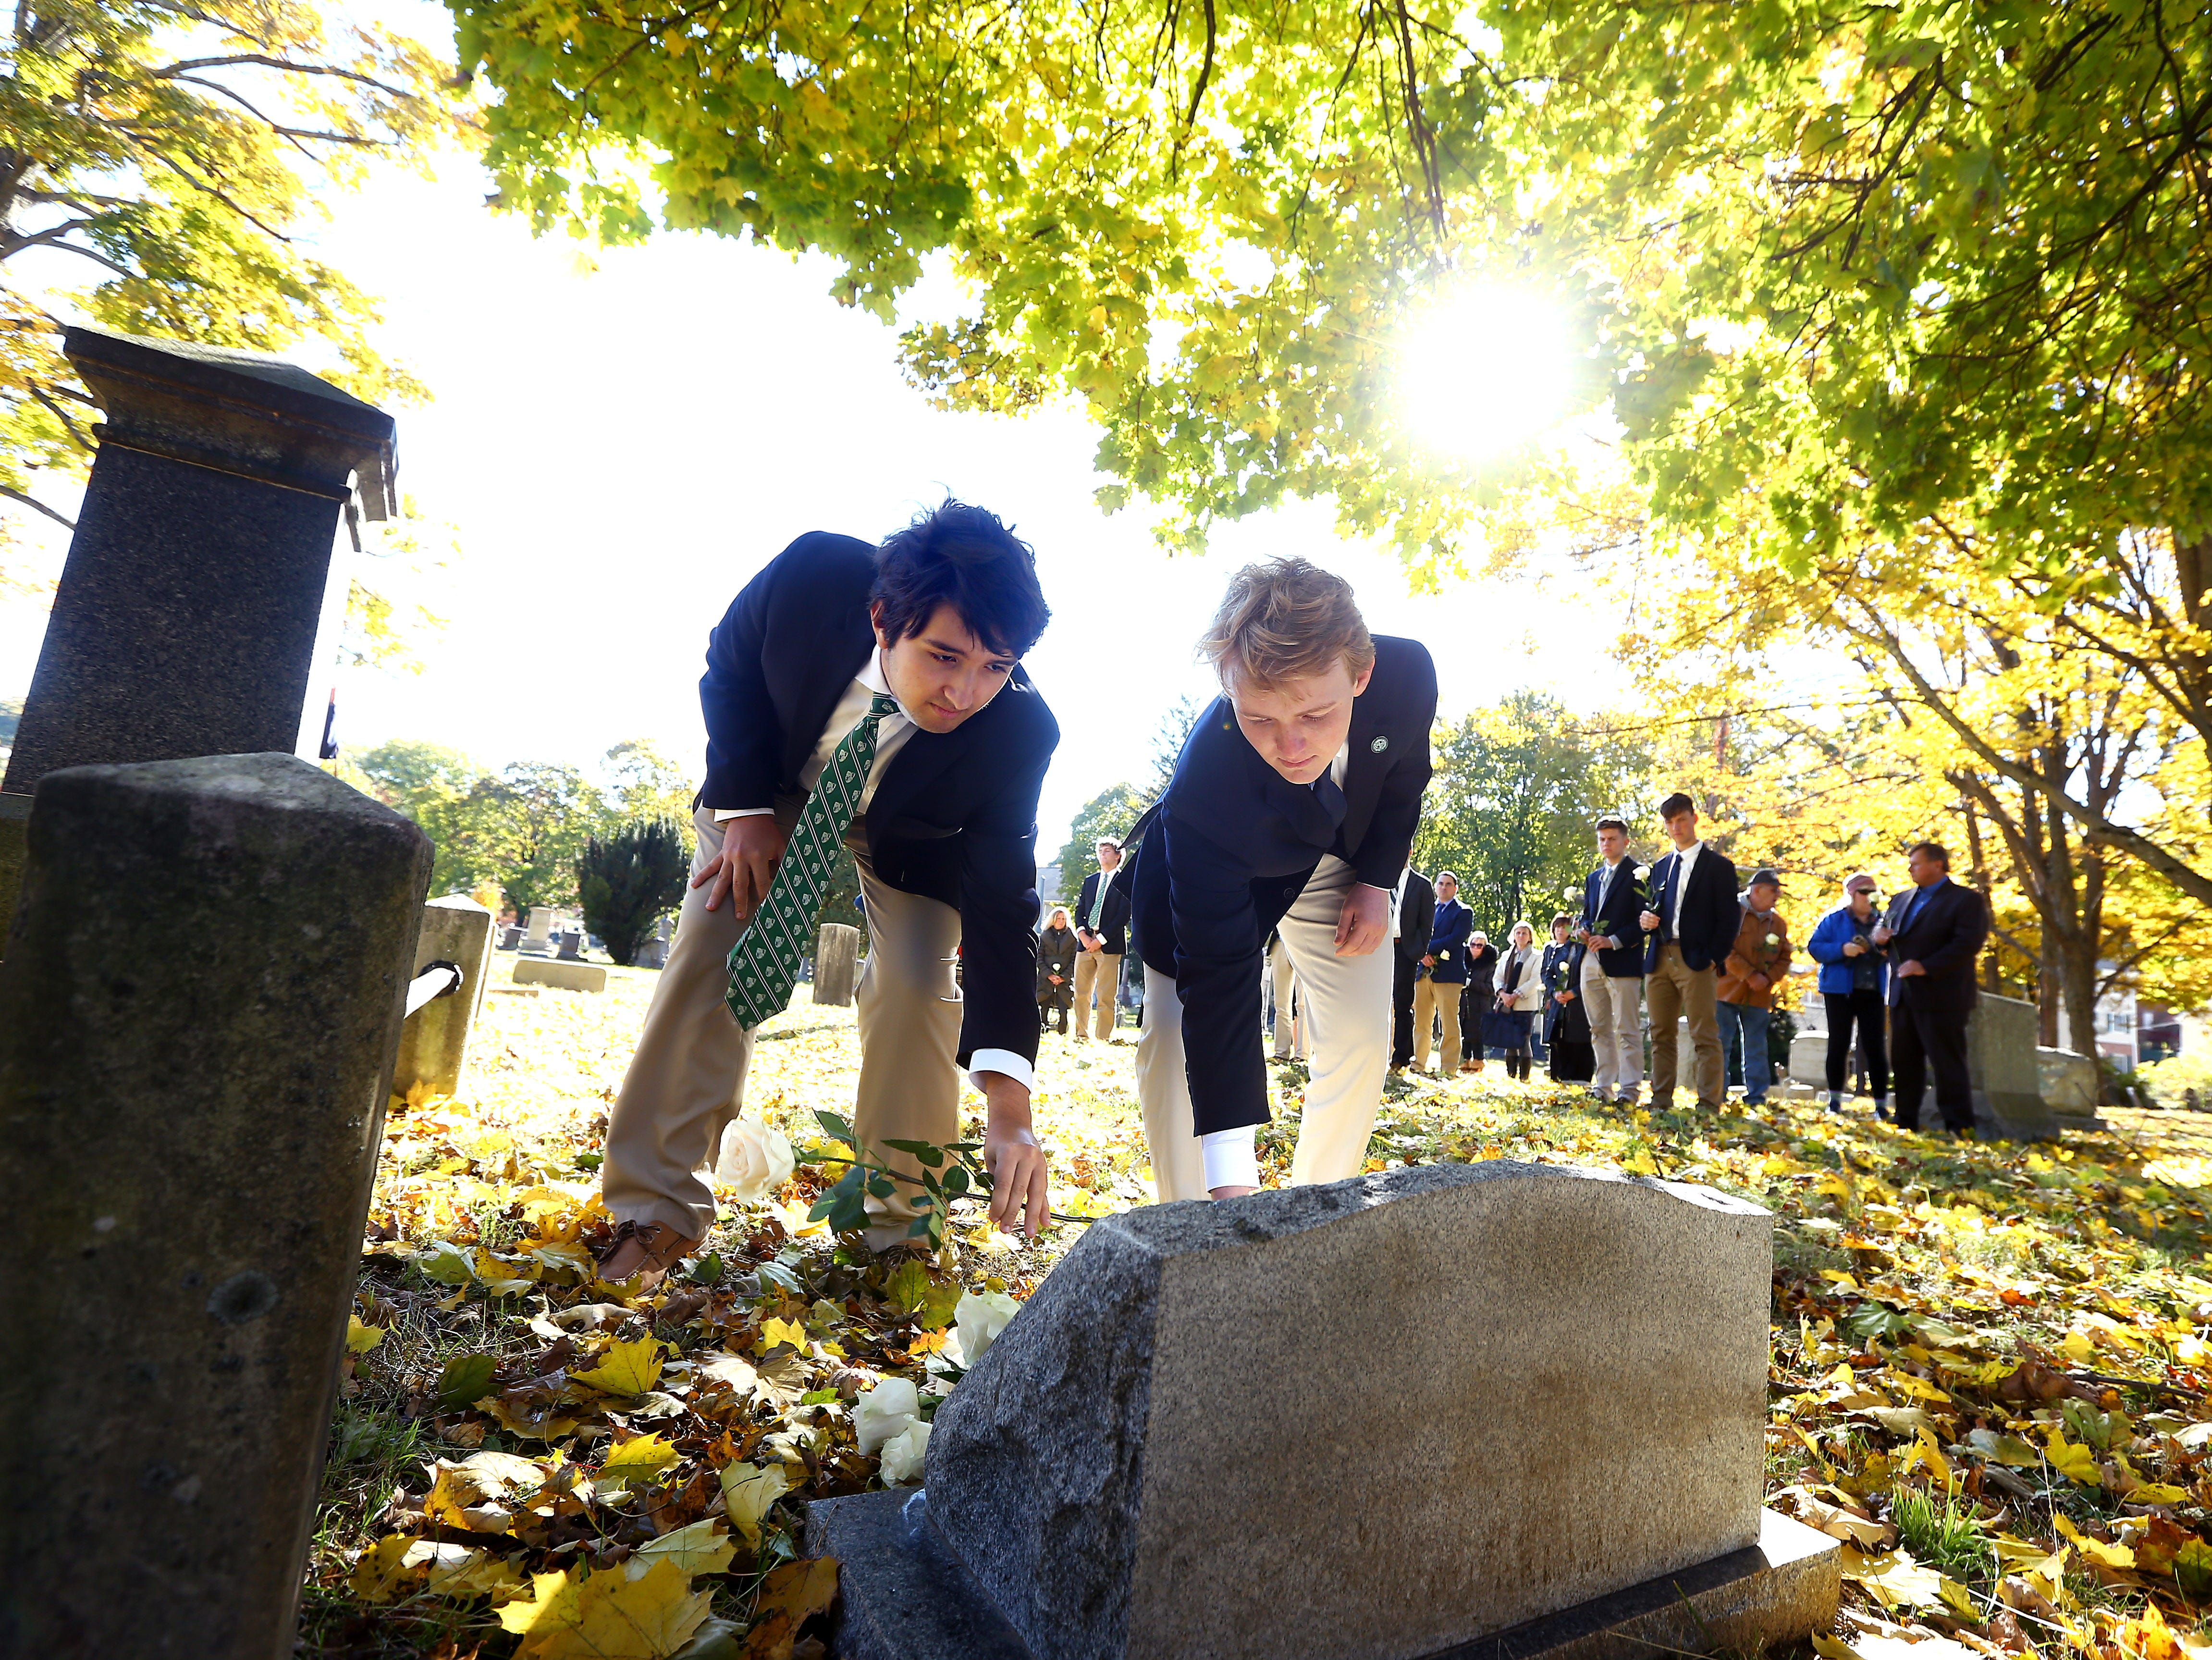 Delbarton students place roses after a graveside service and blessing at Orchard Street Cemetery in Dover, gathering to bless the grave for baby Anthony Mary, whom they so-named after he was abandoned and found deceased at a recycling center in Mine Hill. October 30, 2018, Dover, NJ